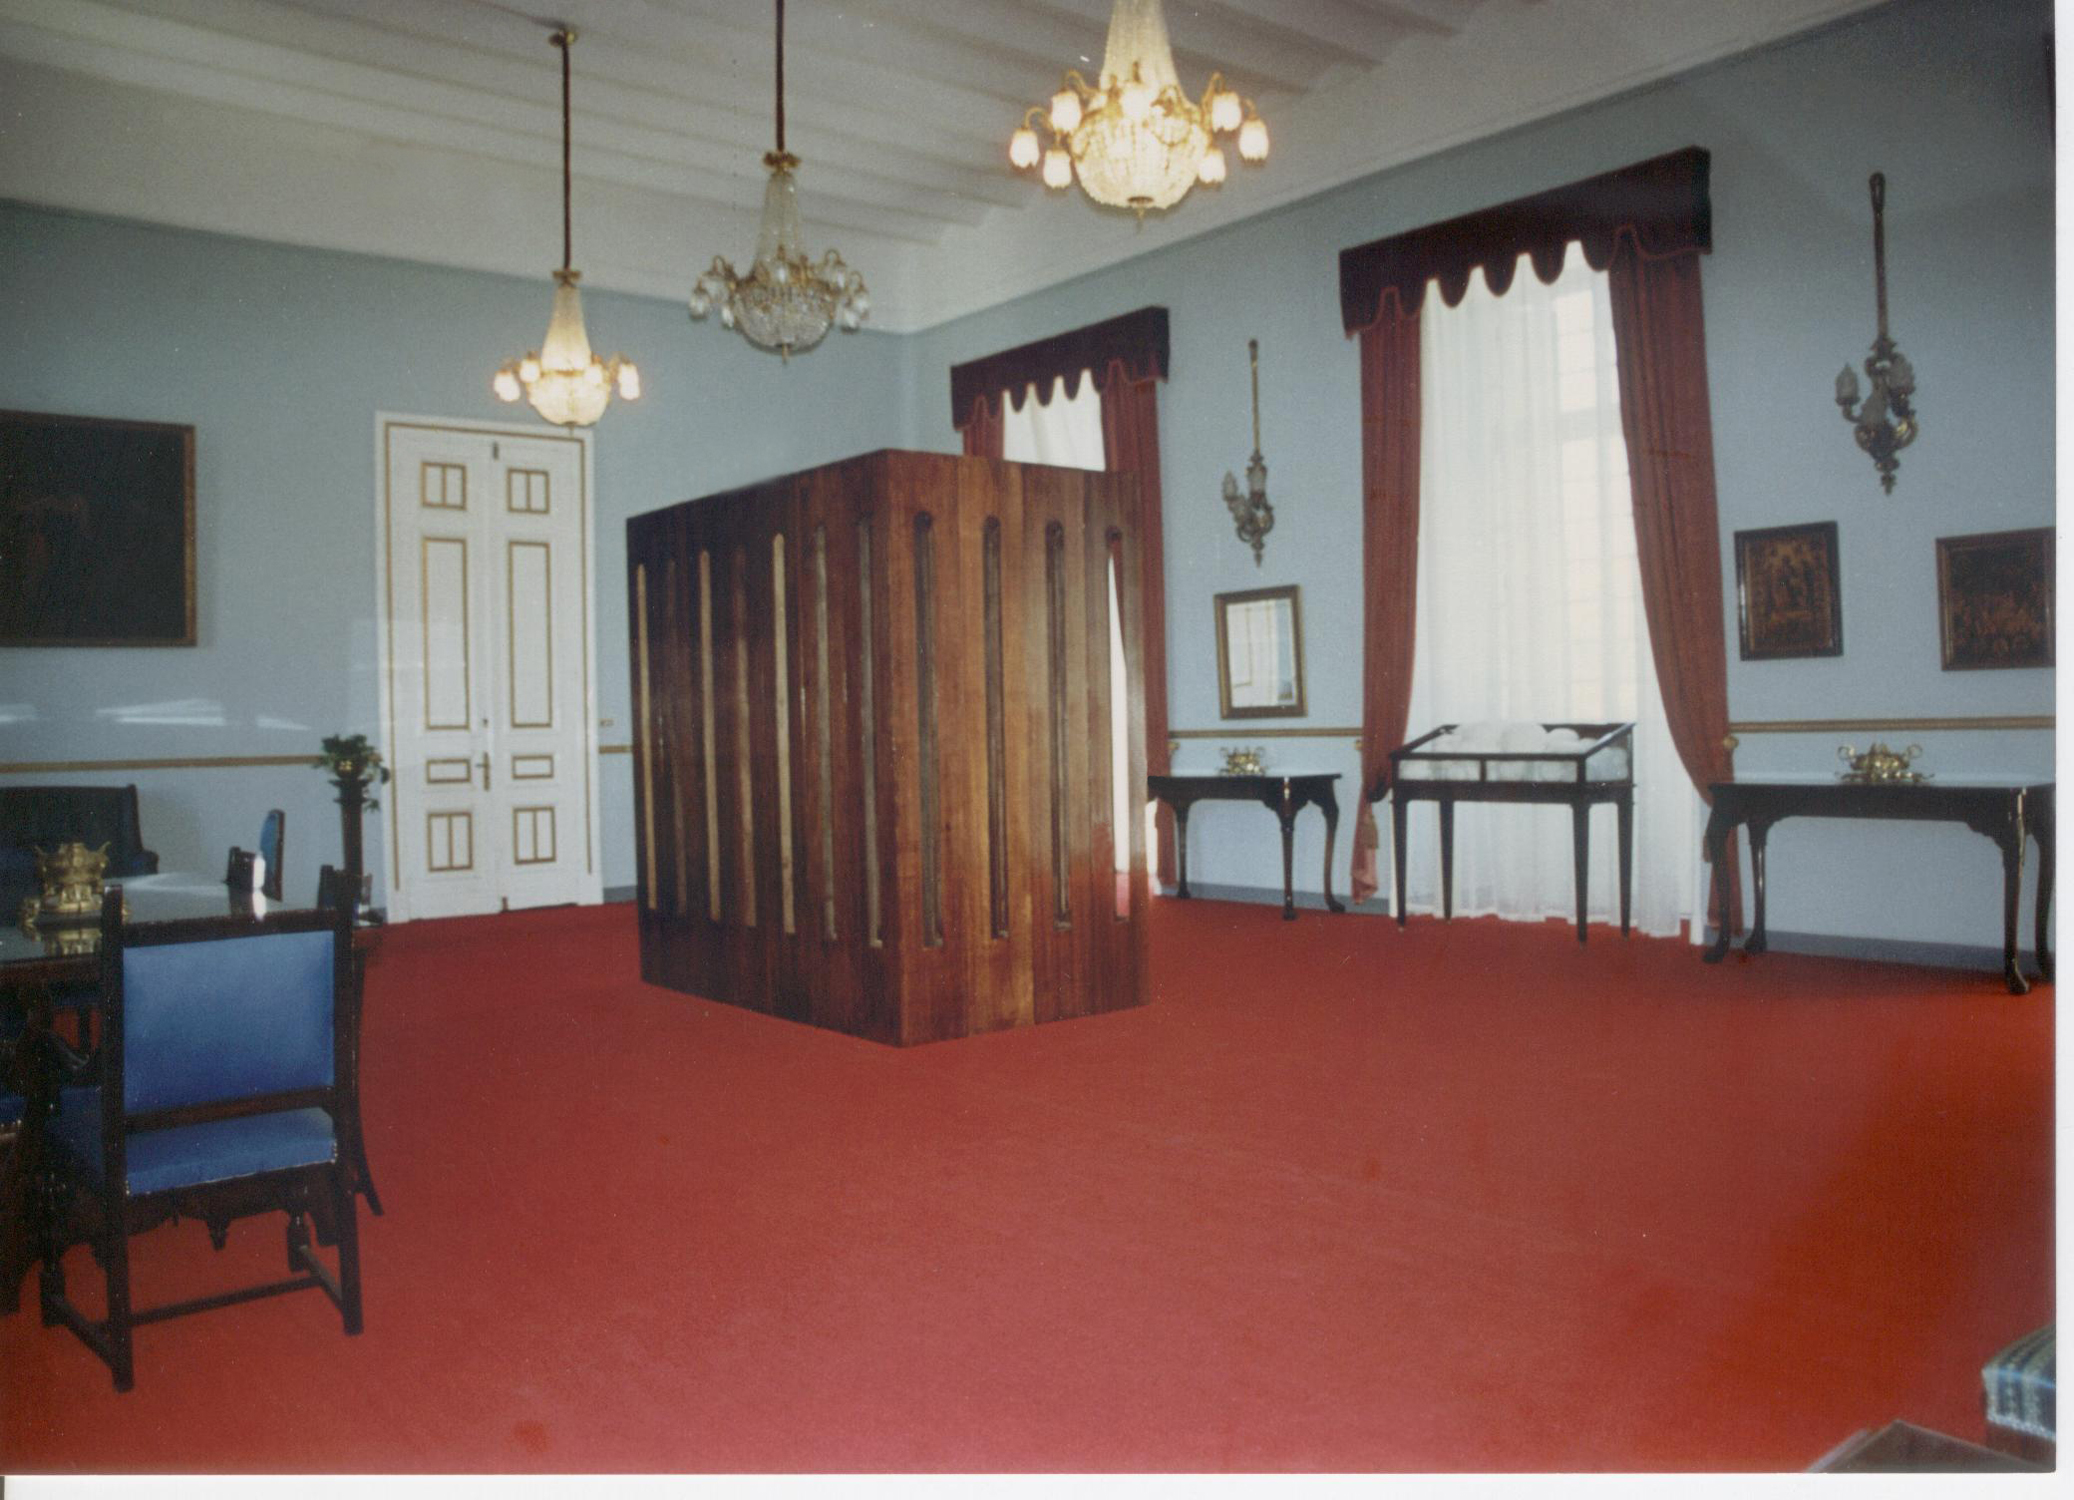 Untitled, 1996, polished plywood, 245 x 140 x 240 cm. Installation view. General Greek Consulate, Alexandria, Egypt